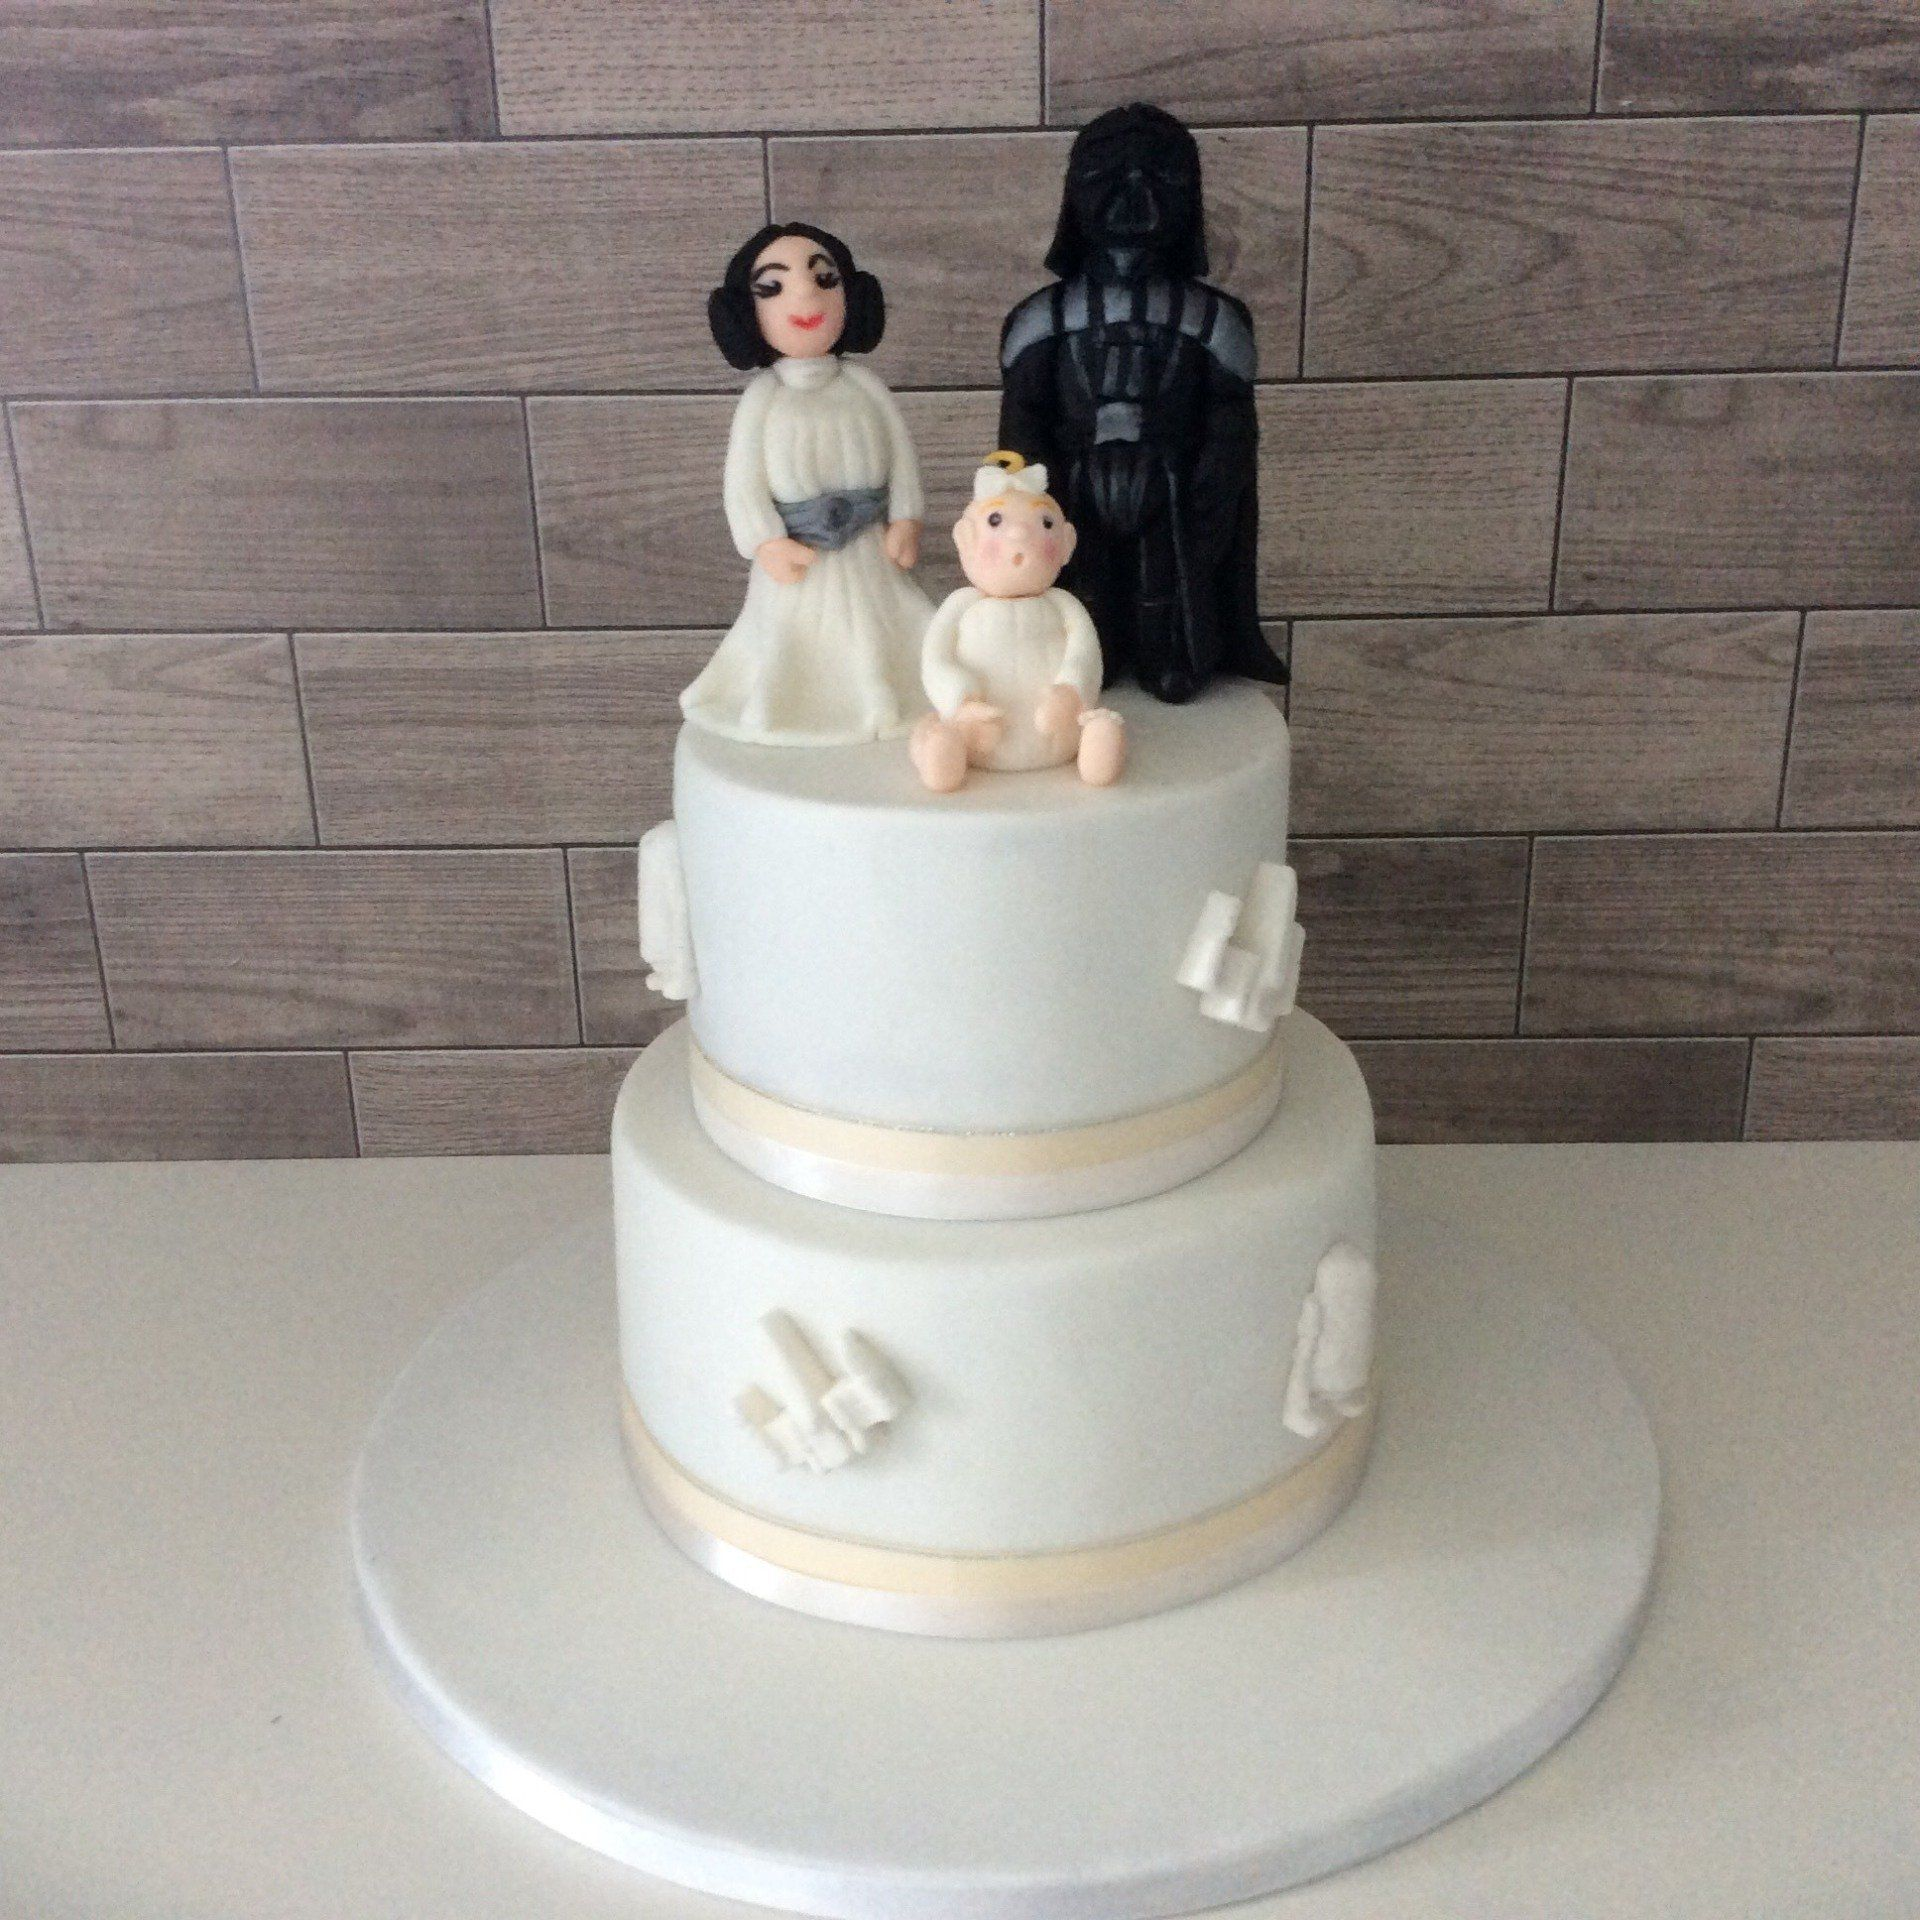 Wedding Cakes Belfast: Delectable Wedding Cakes In Lisburn And Belfast